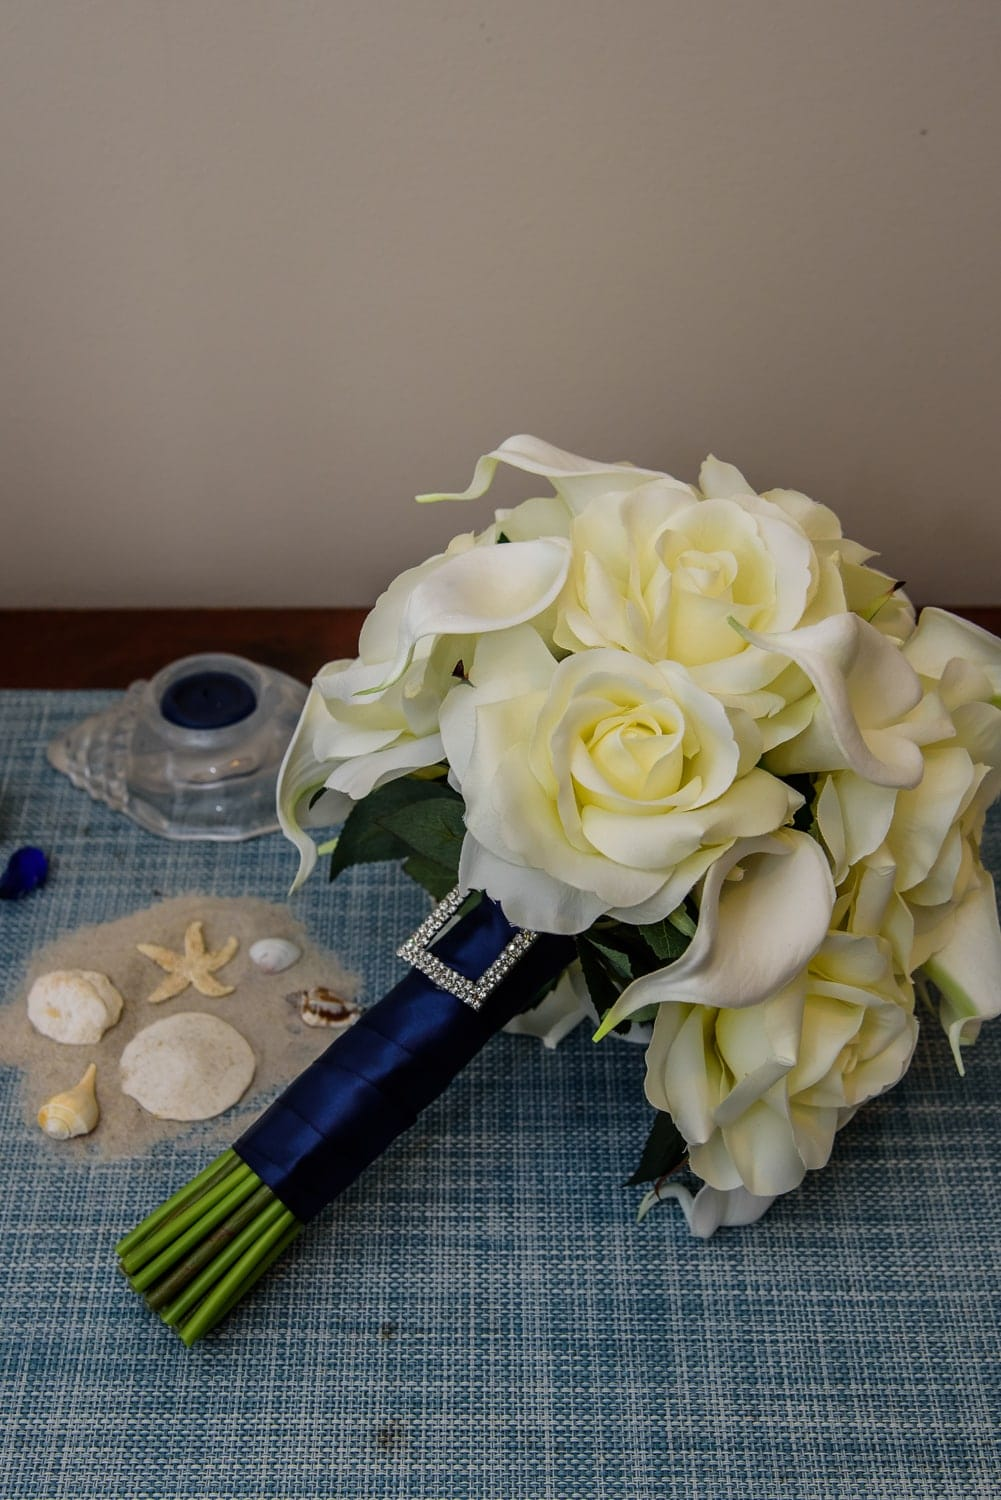 A wedding bridal bouquet of ivory roses and navy embellishments.